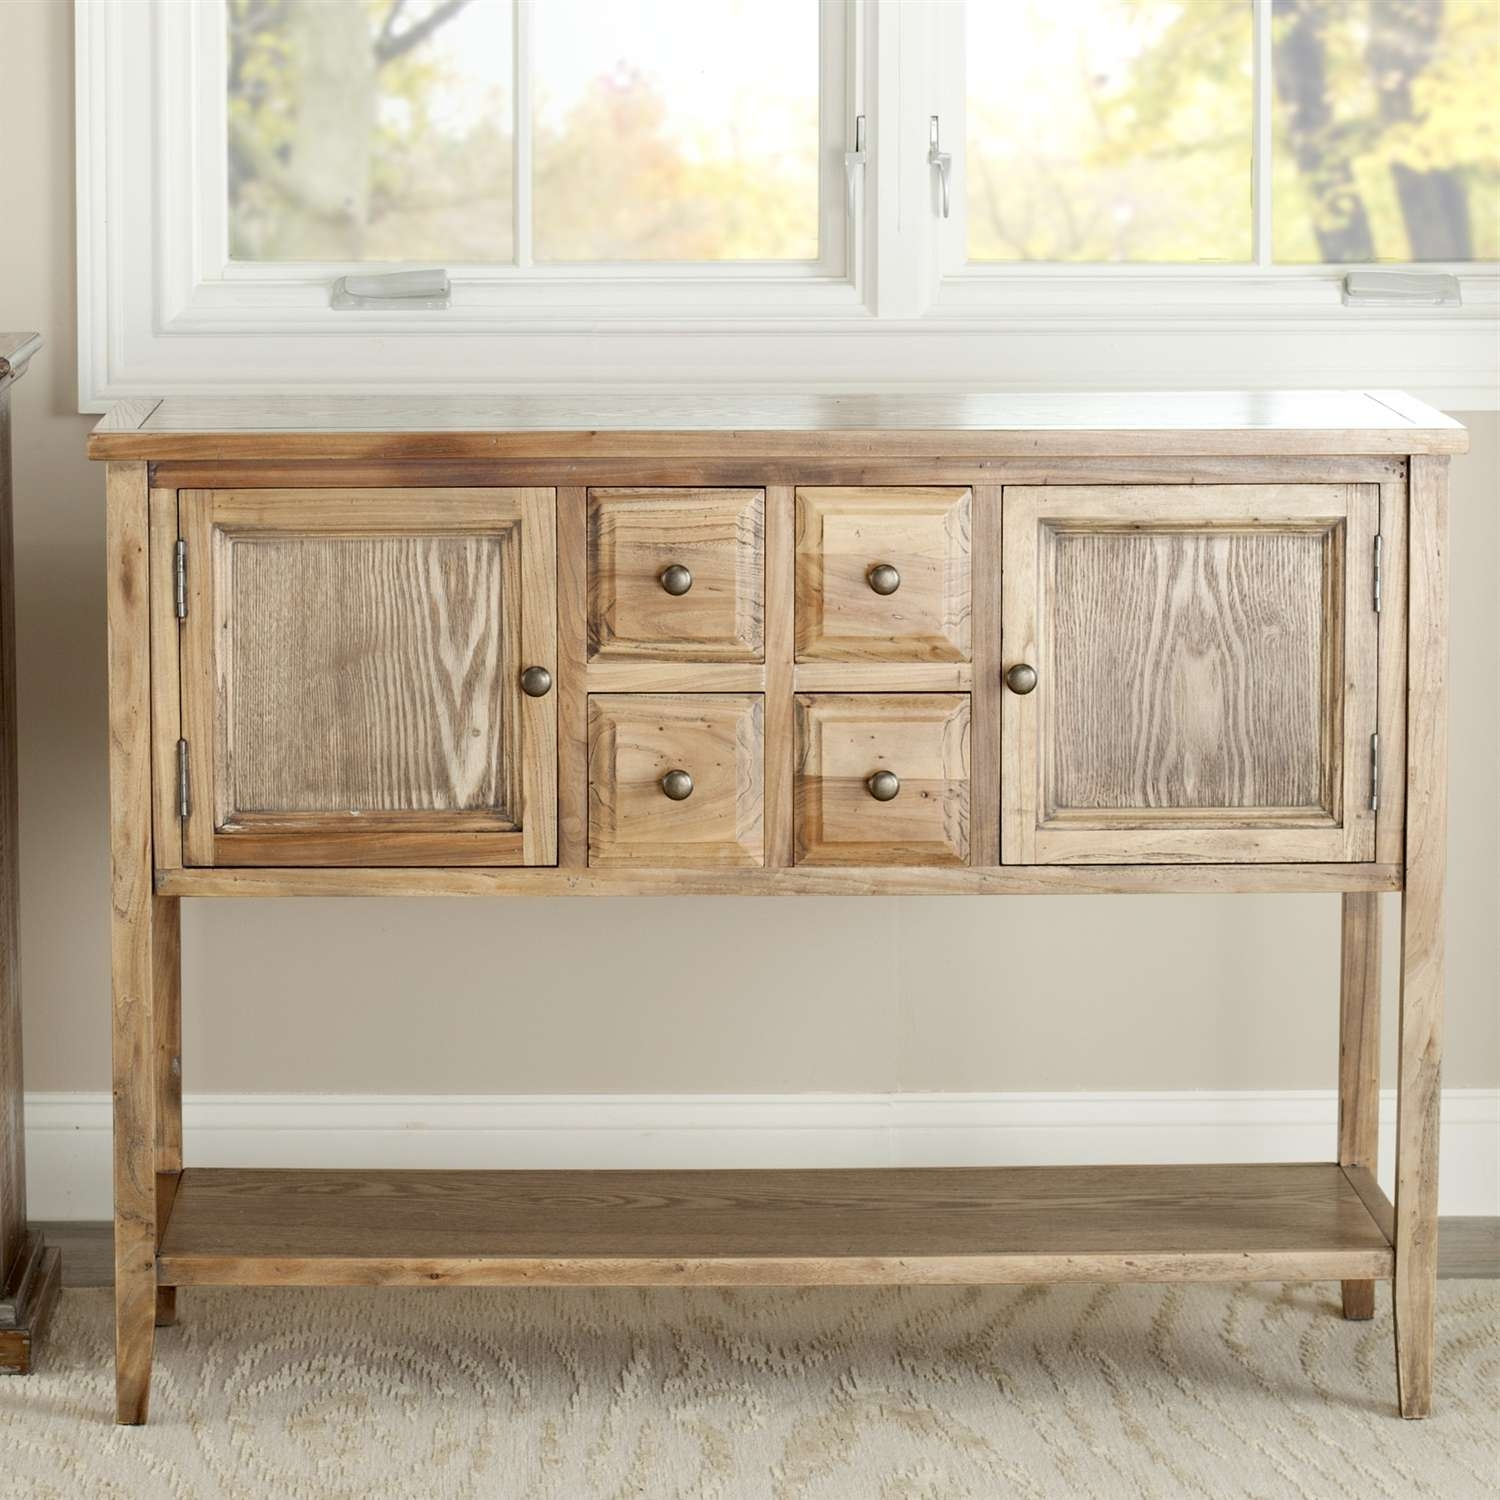 Oak Wood Finish Dining Room Sideboard Buffet Console Table Cabinet Throughout Buffet Console Sideboards (Gallery 9 of 20)